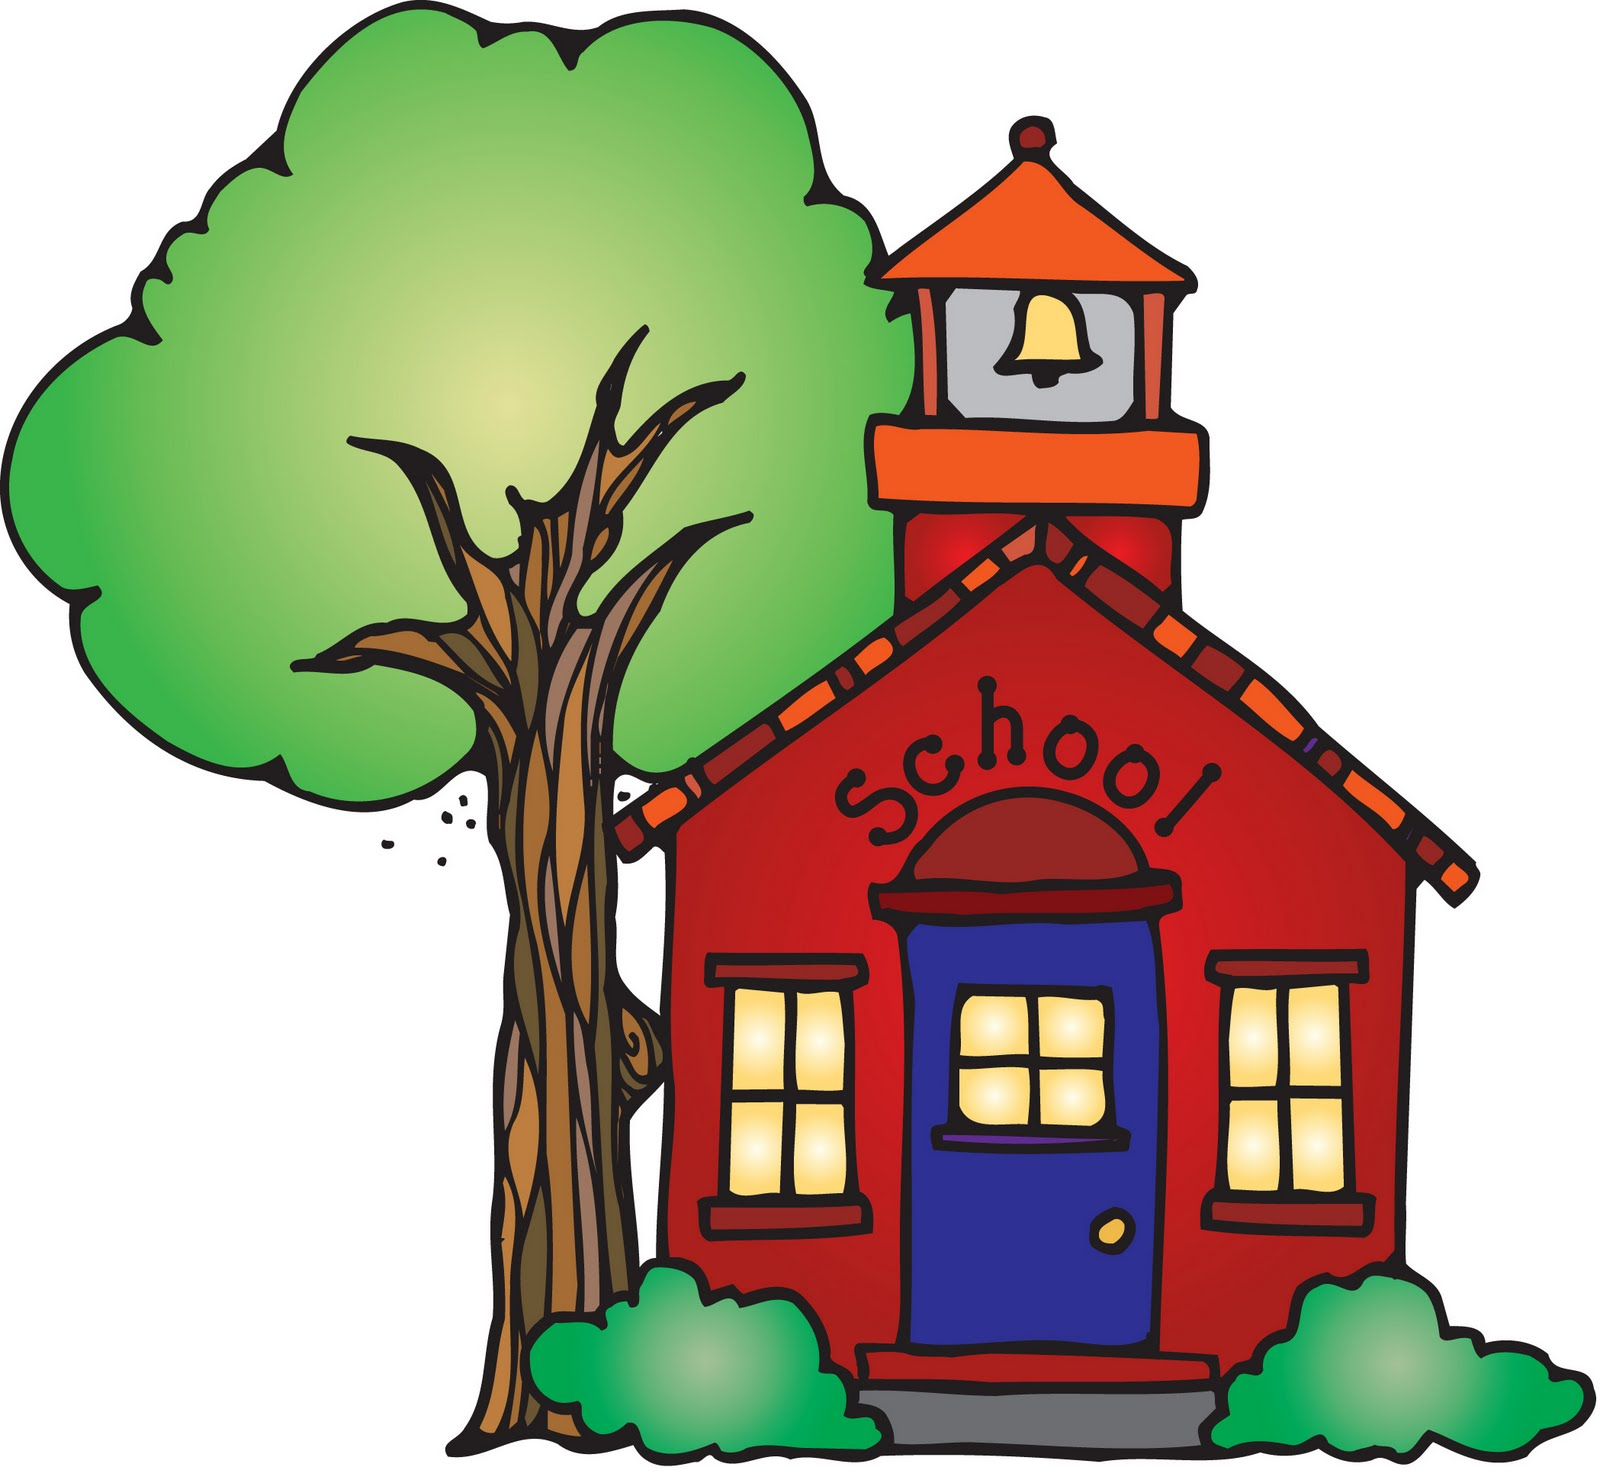 Free School Cliparts Graphics, Download Free Clip Art, Free.